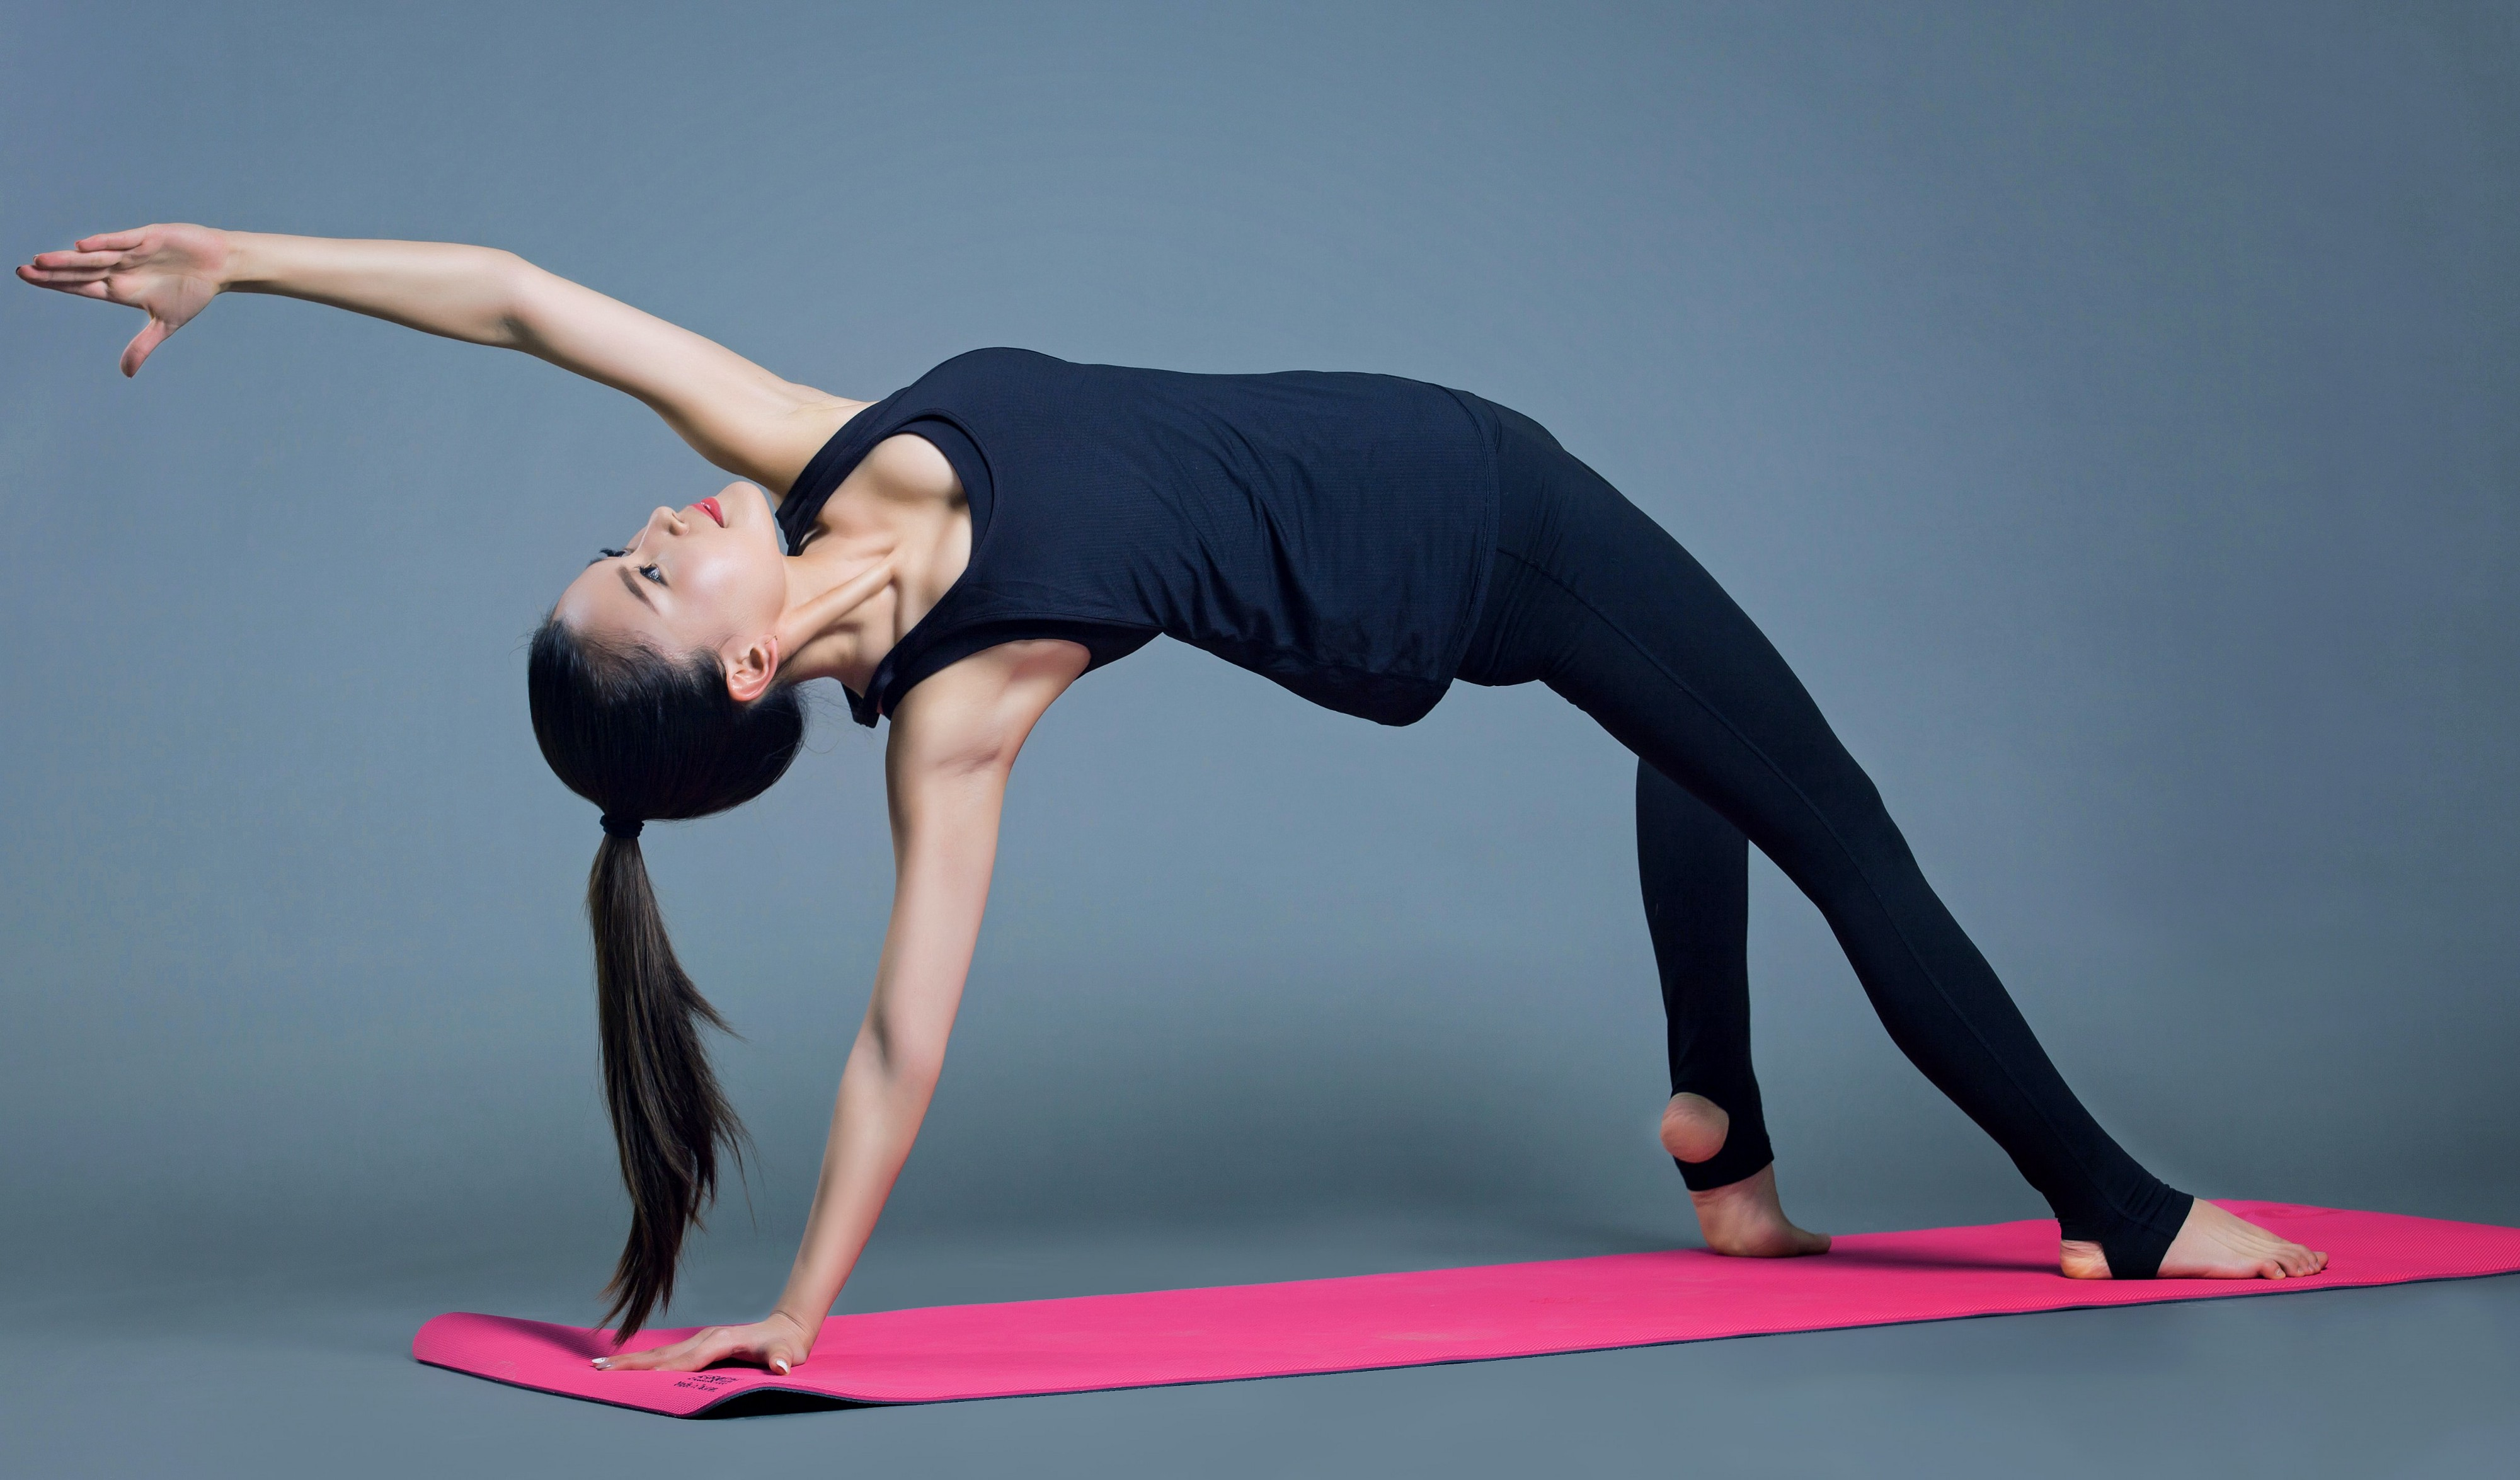 Woman doing yoga on a mat.